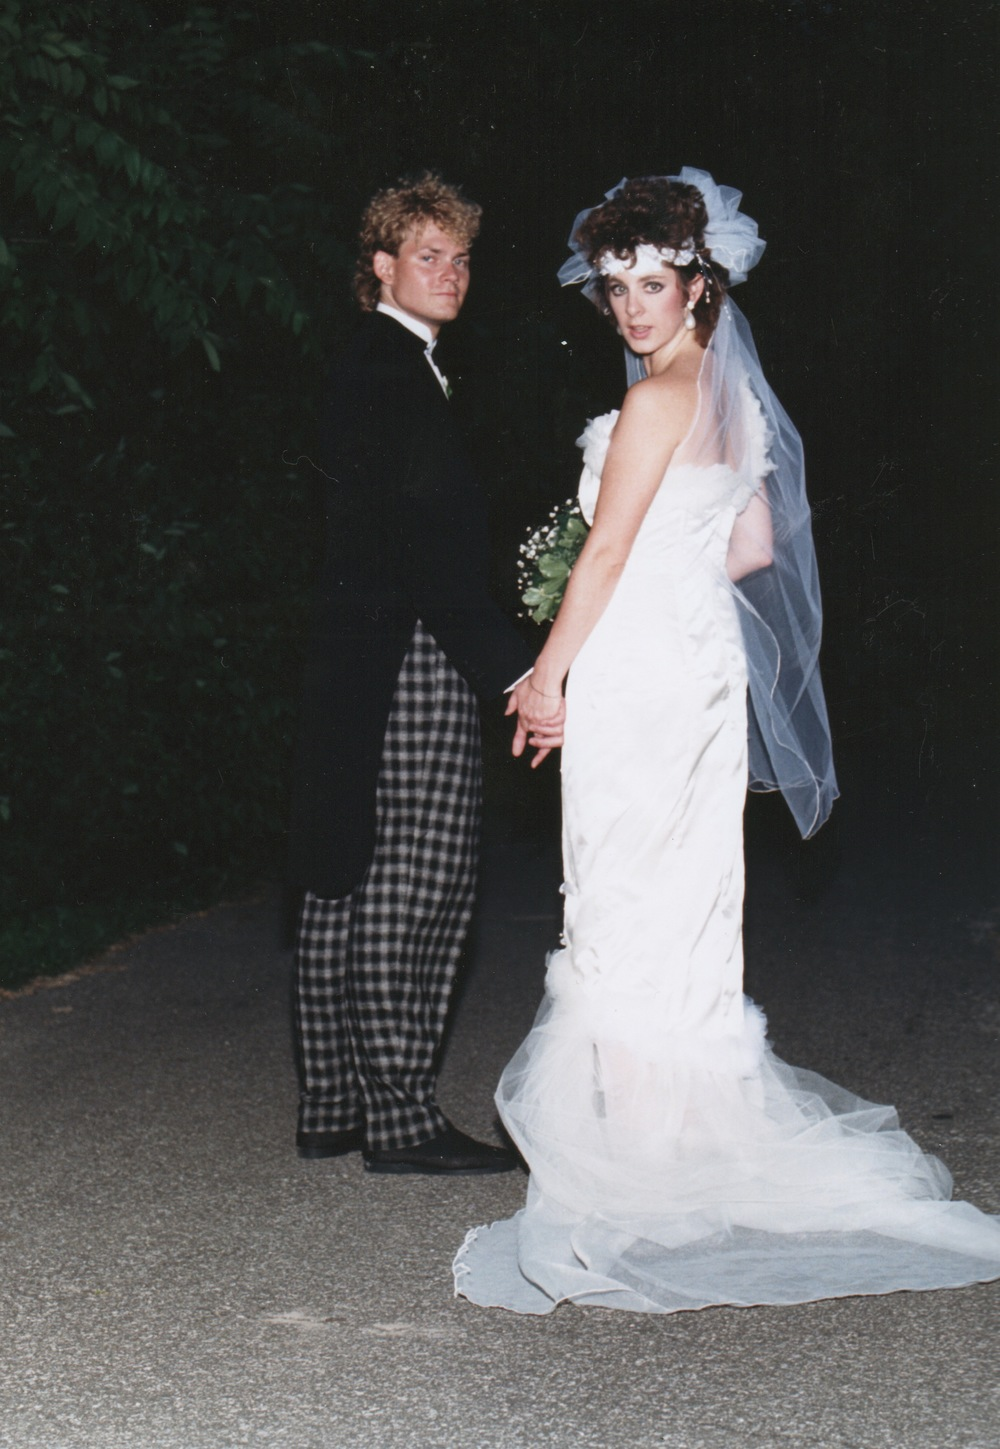 Wedding Day, July 5, 1986